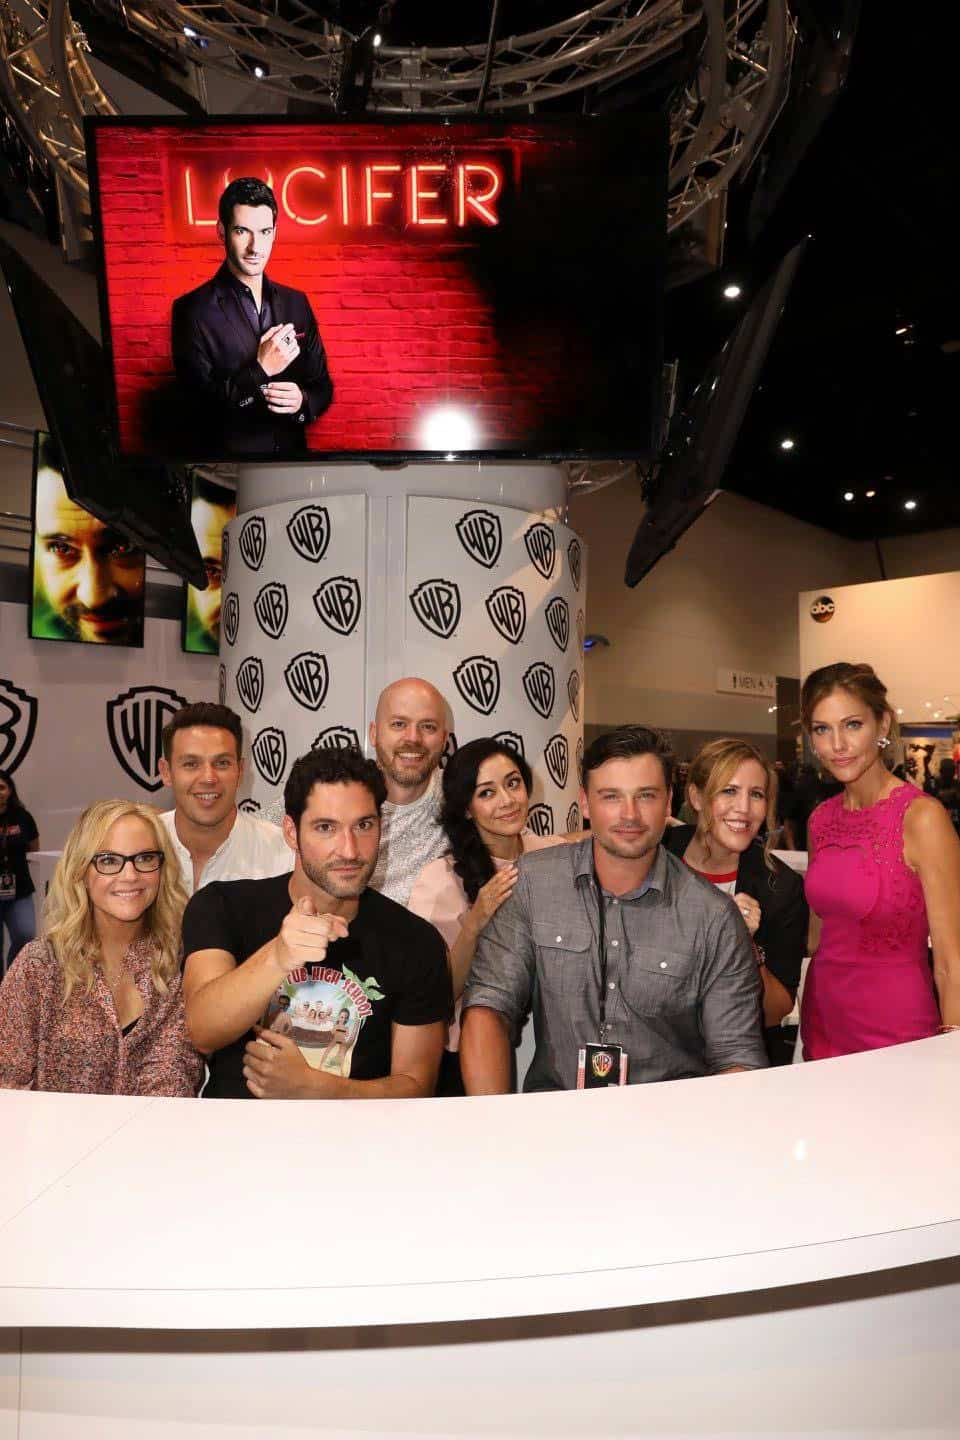 The cast and executive producers of LUCIFER turn up the heat at Comic-Con 2017 at the Warner Bros. booth on Saturday, July 22. #WBSDCC (© 2017 WBEI. All Rights Reserved)